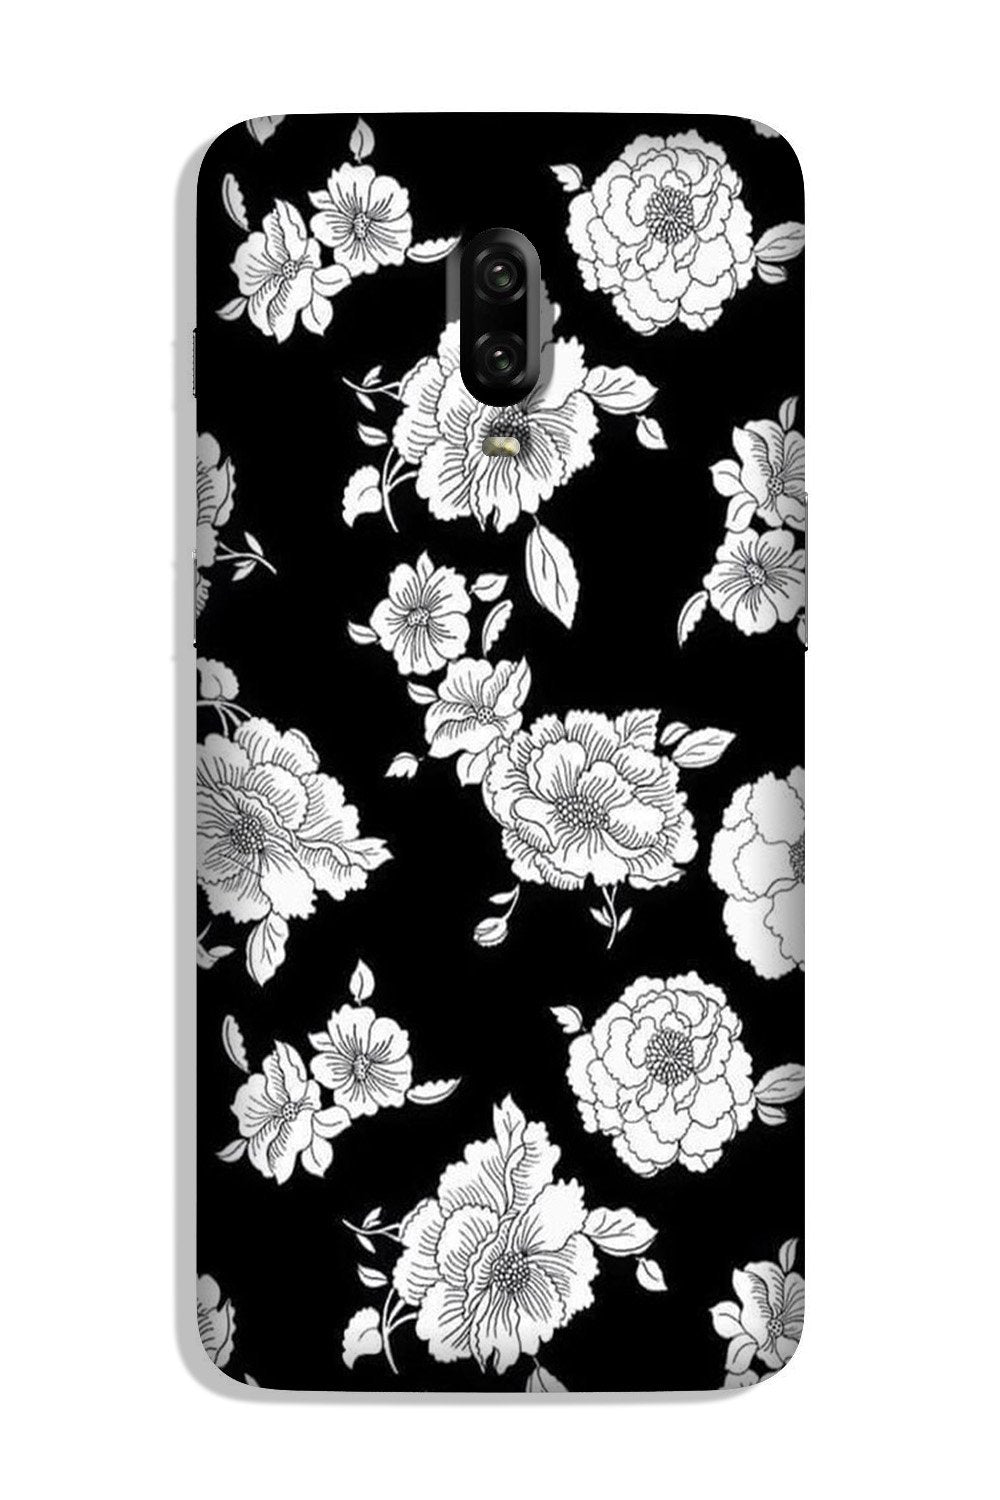 White flowers Black Background Case for OnePlus 7